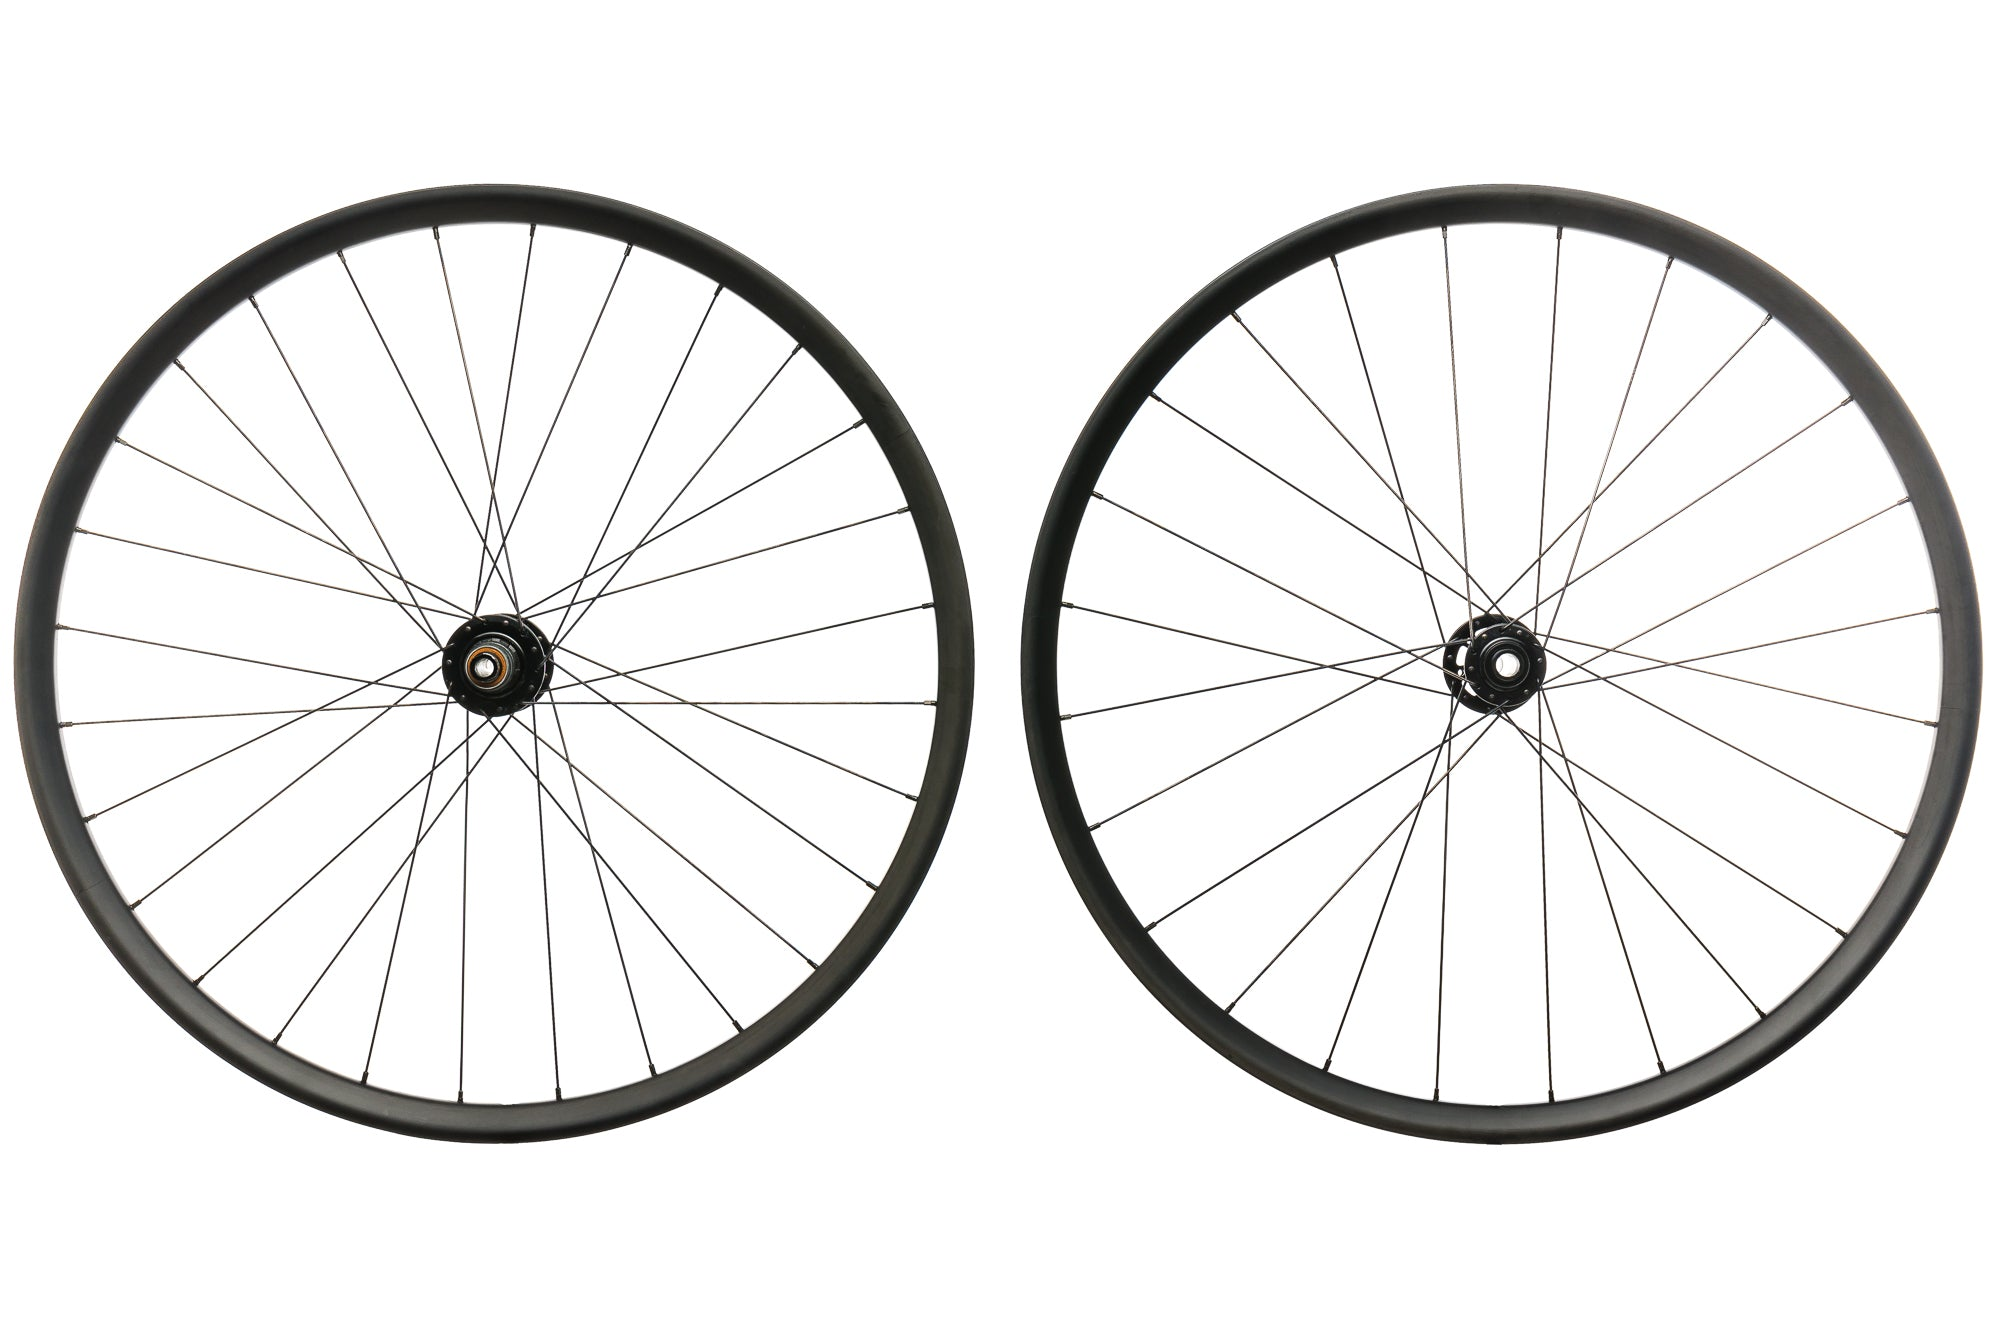 "Specialized Roval Traverse Carbon Tubeless 29"" Wheelset non-drive side"